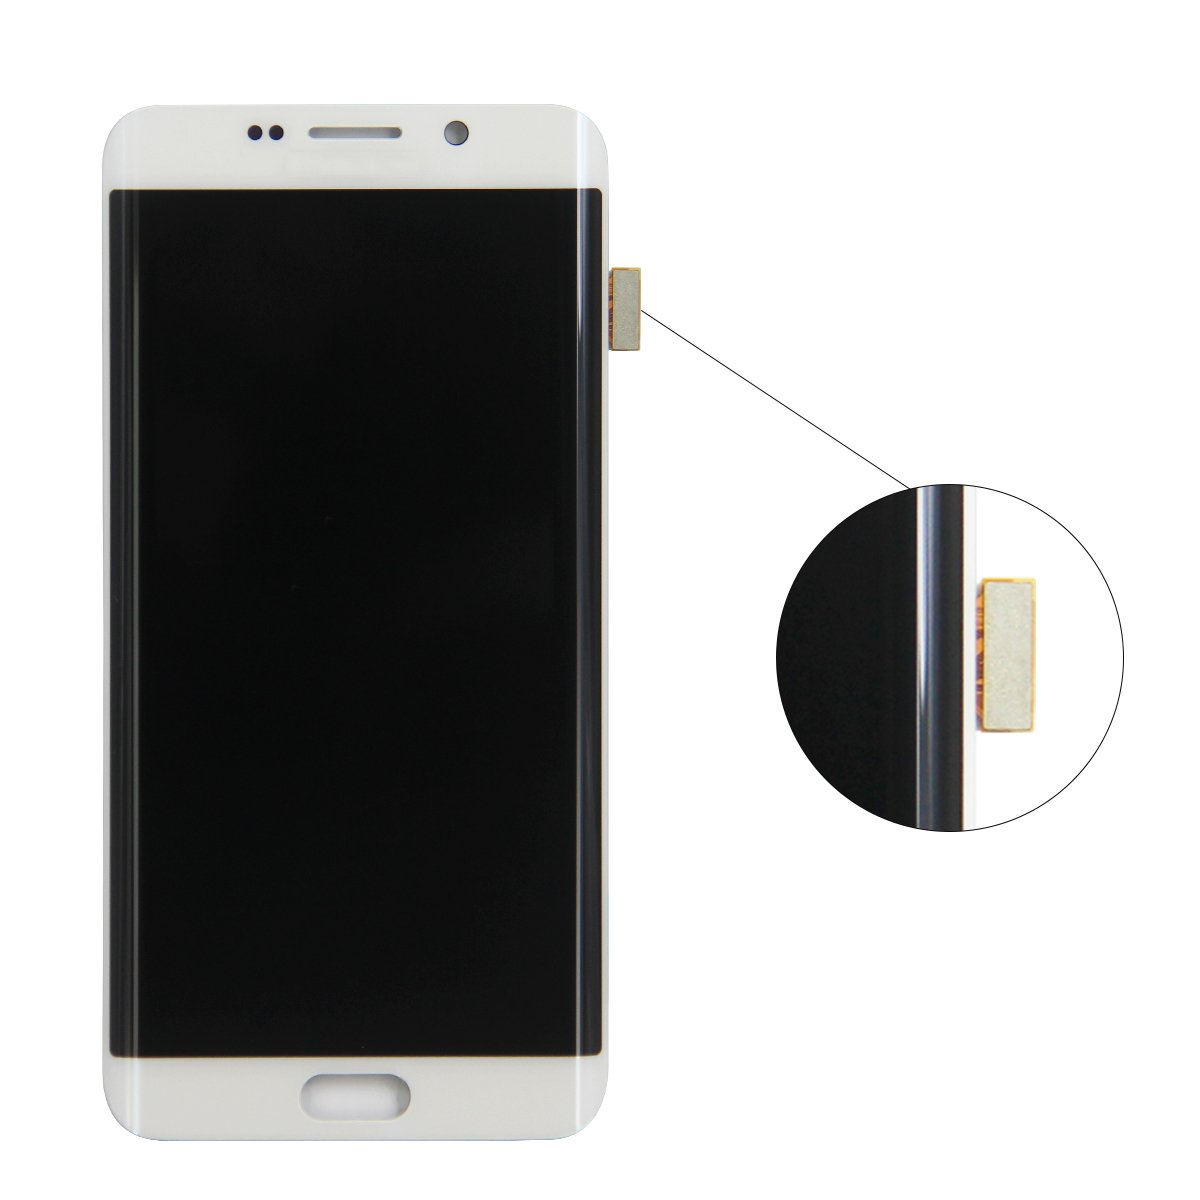 HJSDtech LCD Display Screen Touch Screen Digitizer Assembly Replacement for Samsung Galaxy S6 Edge Plus G928T G928P G928V (White) by HJSDtech (Image #2)